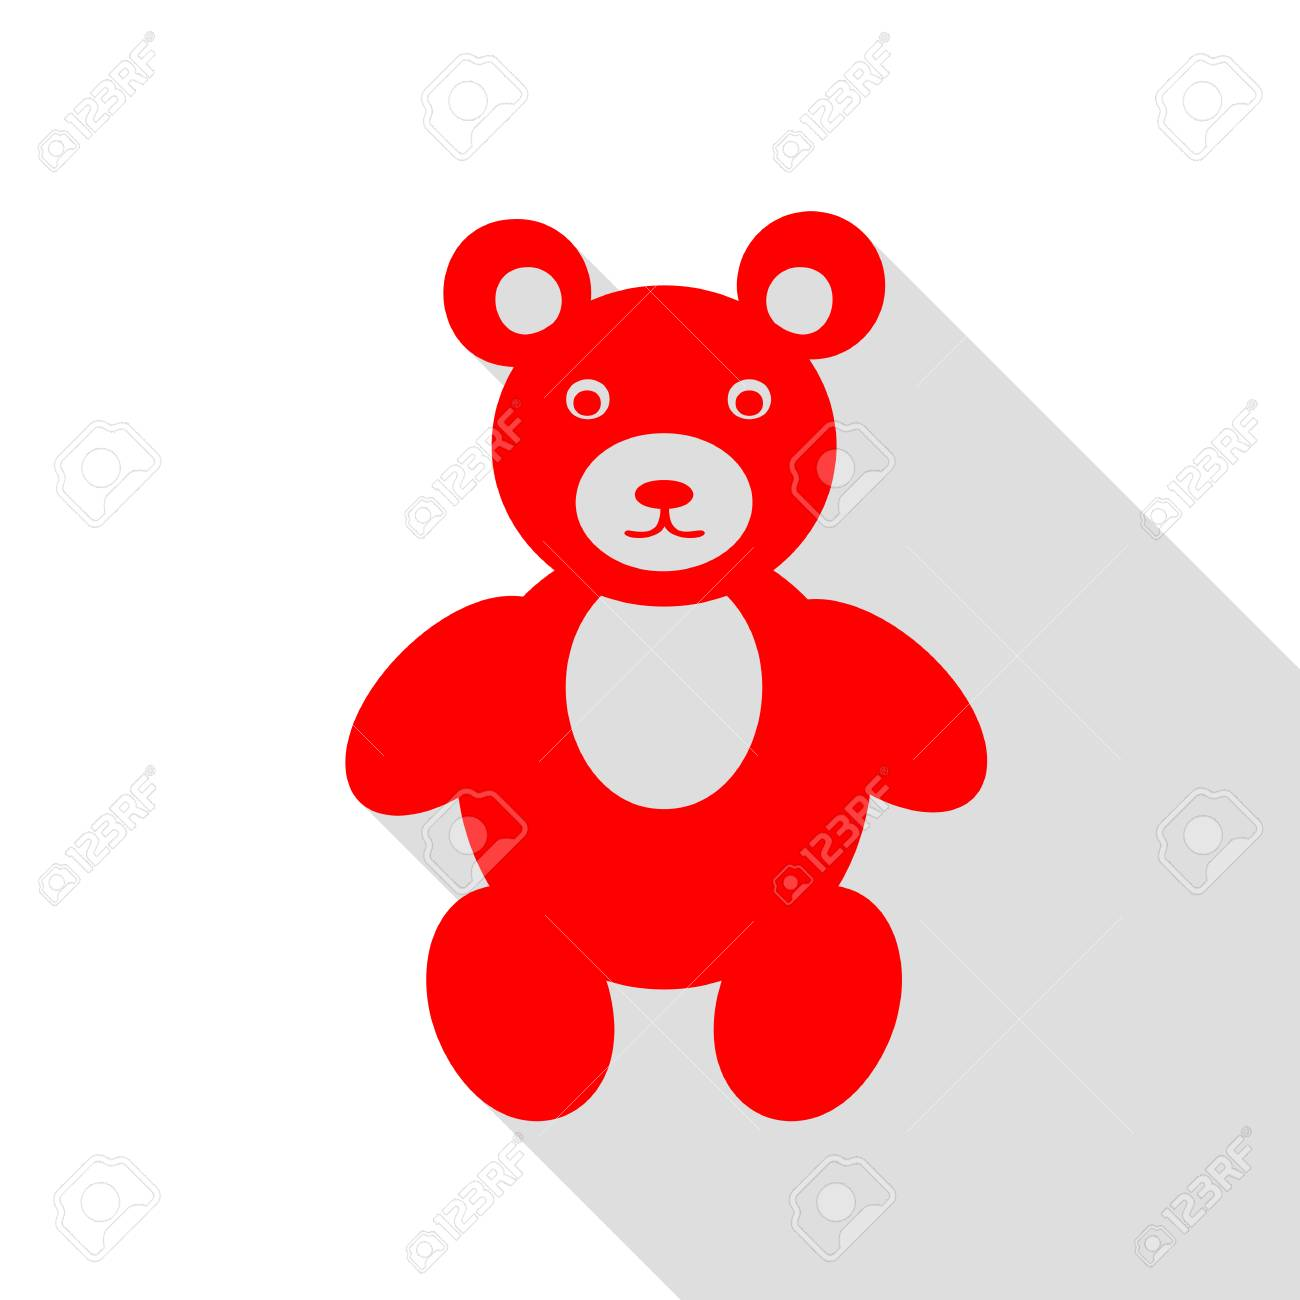 teddy bear sign illustration red icon with flat style shadow